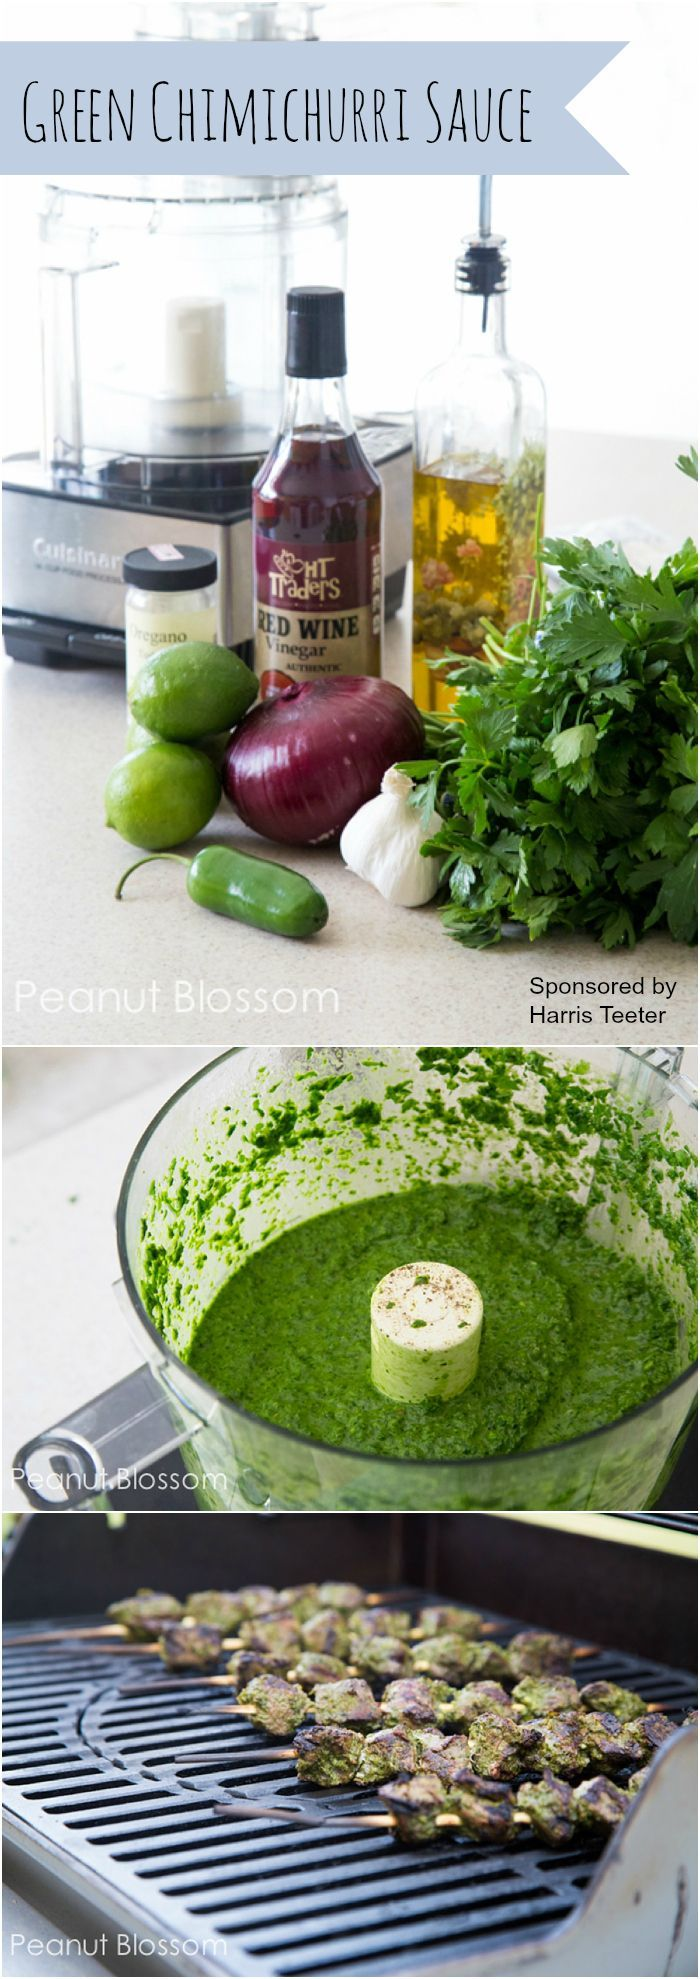 Colorful green chimichurri sauce: AWESOME marinade and sauce for grilled steak. So fresh and bright!